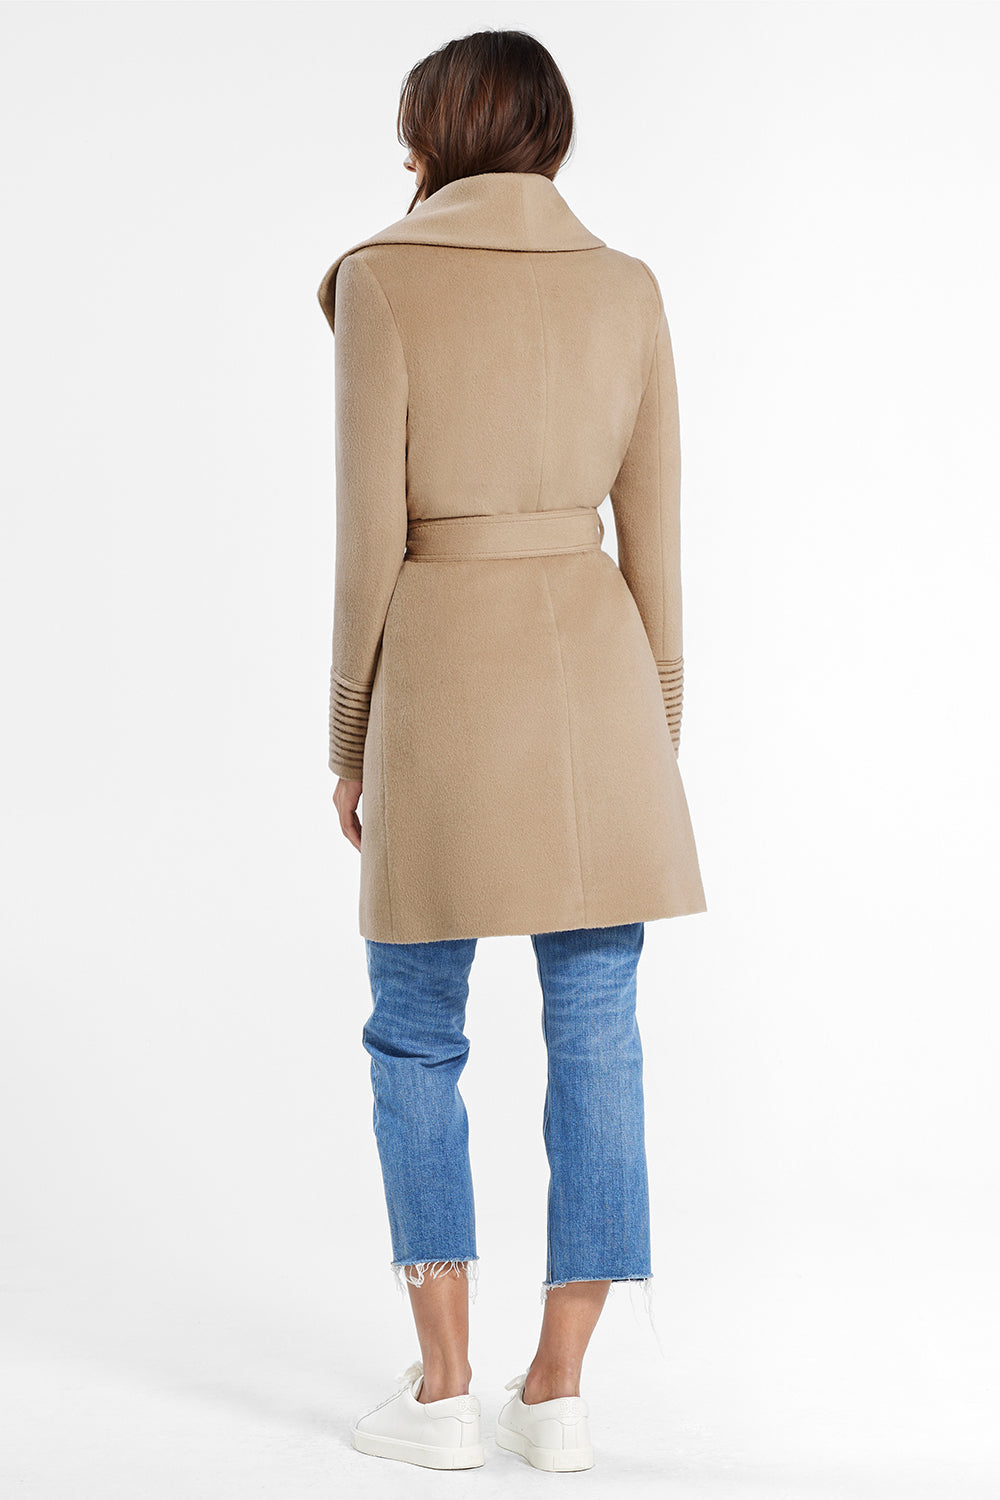 Sentaler Mid Length Shawl Collar Wrap Coat featured in Baby Alpaca and available in Camel. Seen from back.